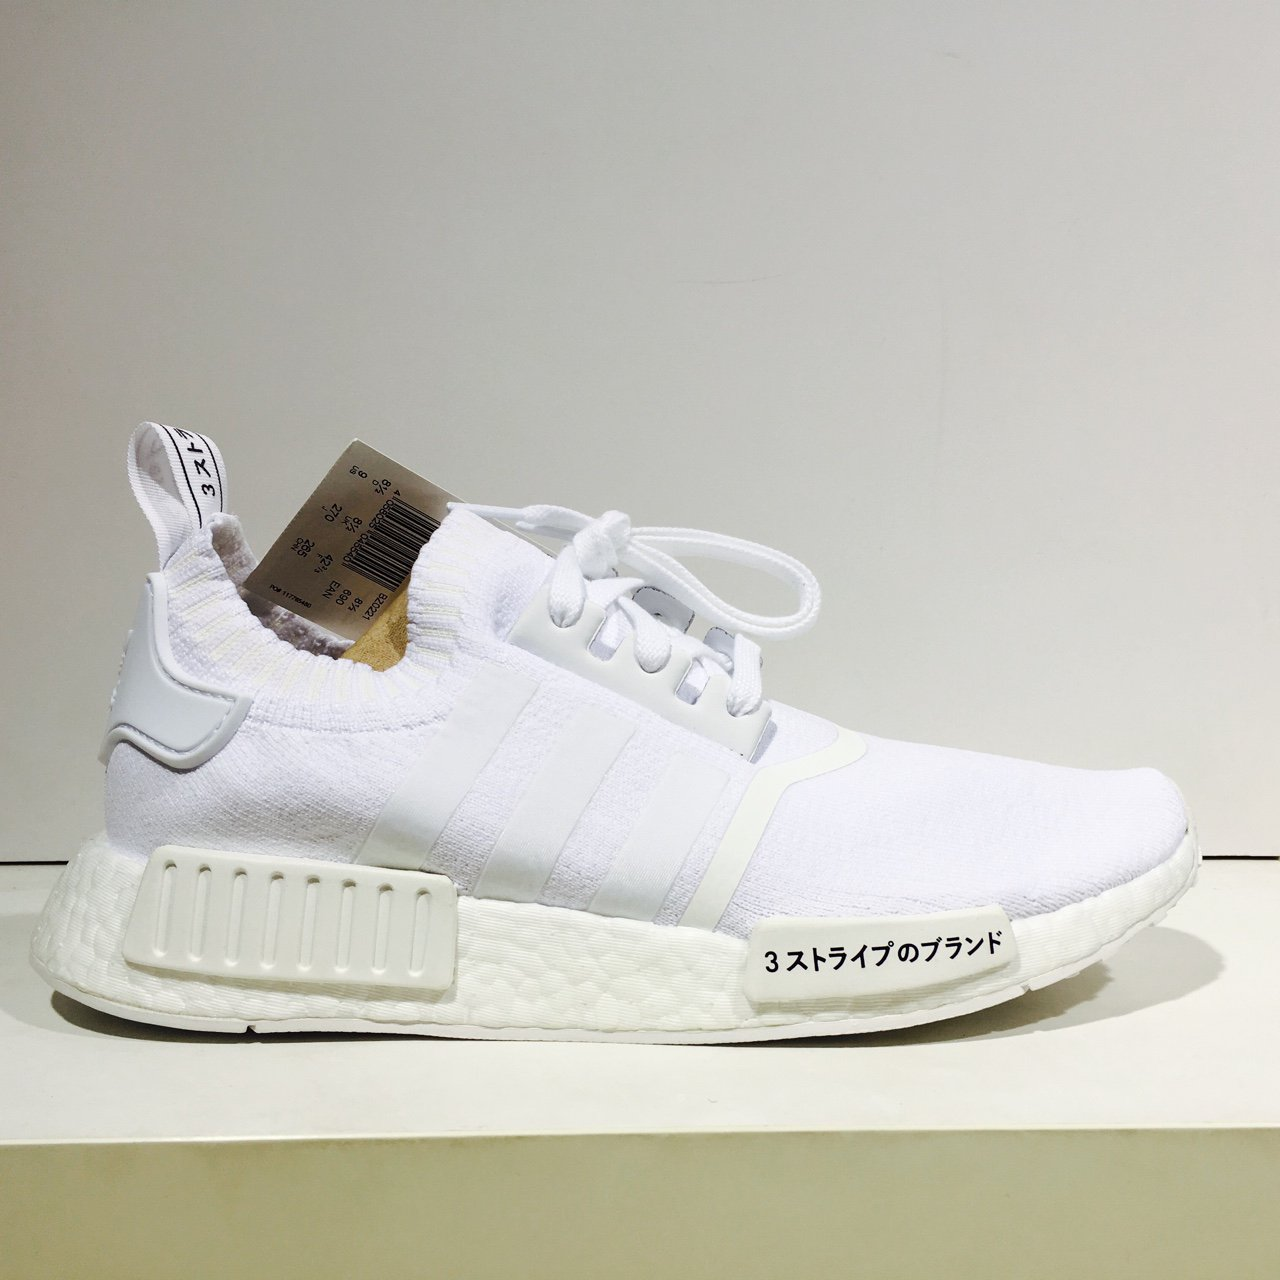 ce442047562d6 Adidas NMD R1 PK Japan Pack Triple White 🇯🇵 🇯🇵 Special 5 - Depop